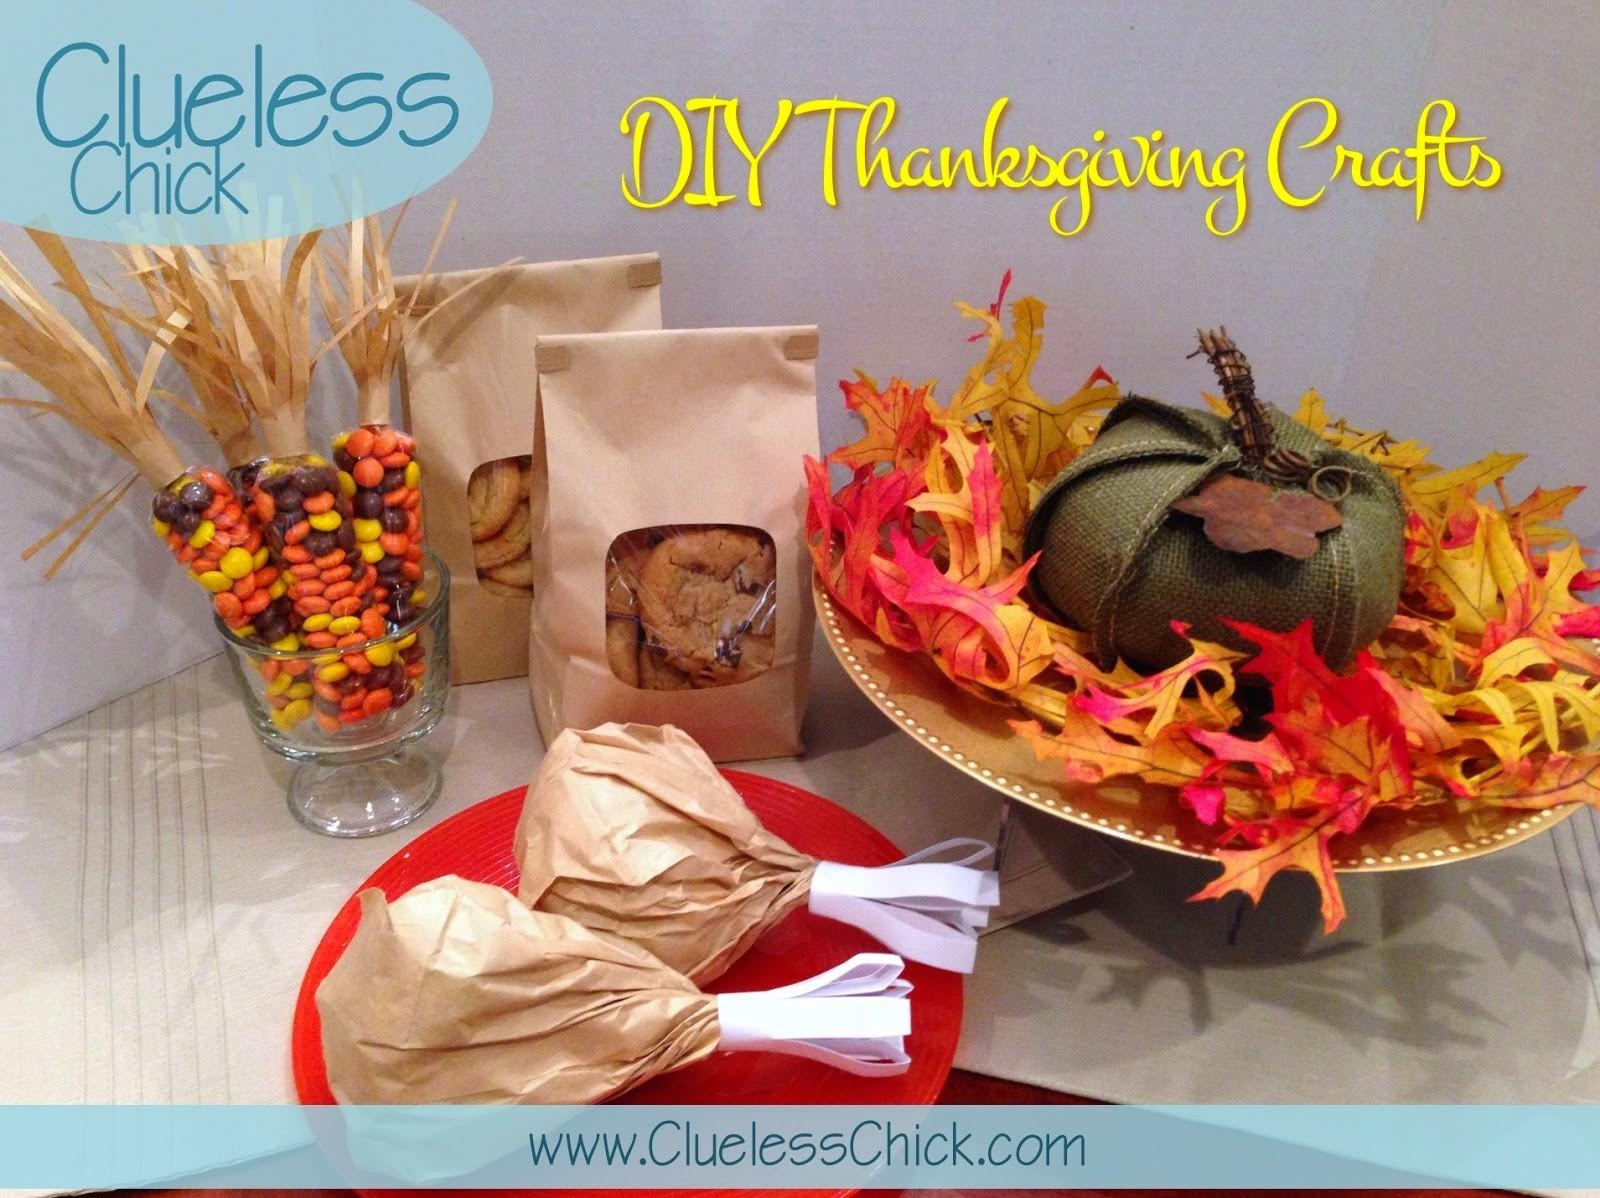 Clueless Chick Diy Thanksgiving Crafts